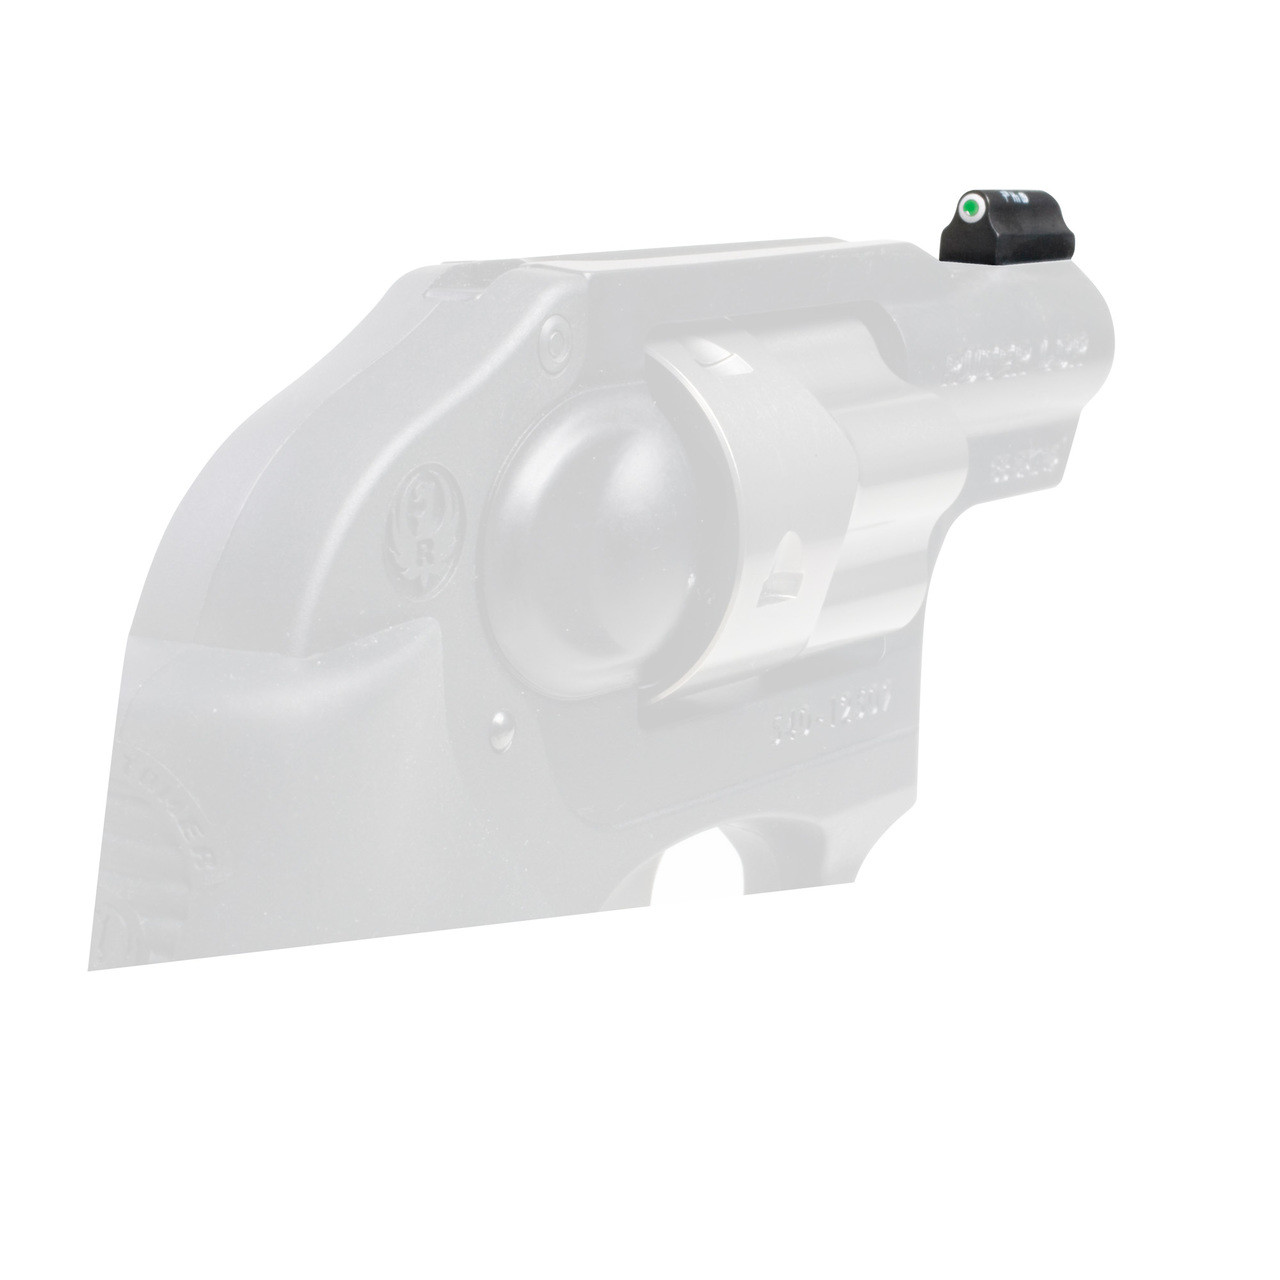 XS Sights XS Sights, Standard Dot Tritium, Front Sight, Fits Ruger LCR,   38/ 357 Only, Not  22 or 9mm, Green with White Outline RP-0008N-4, UPC